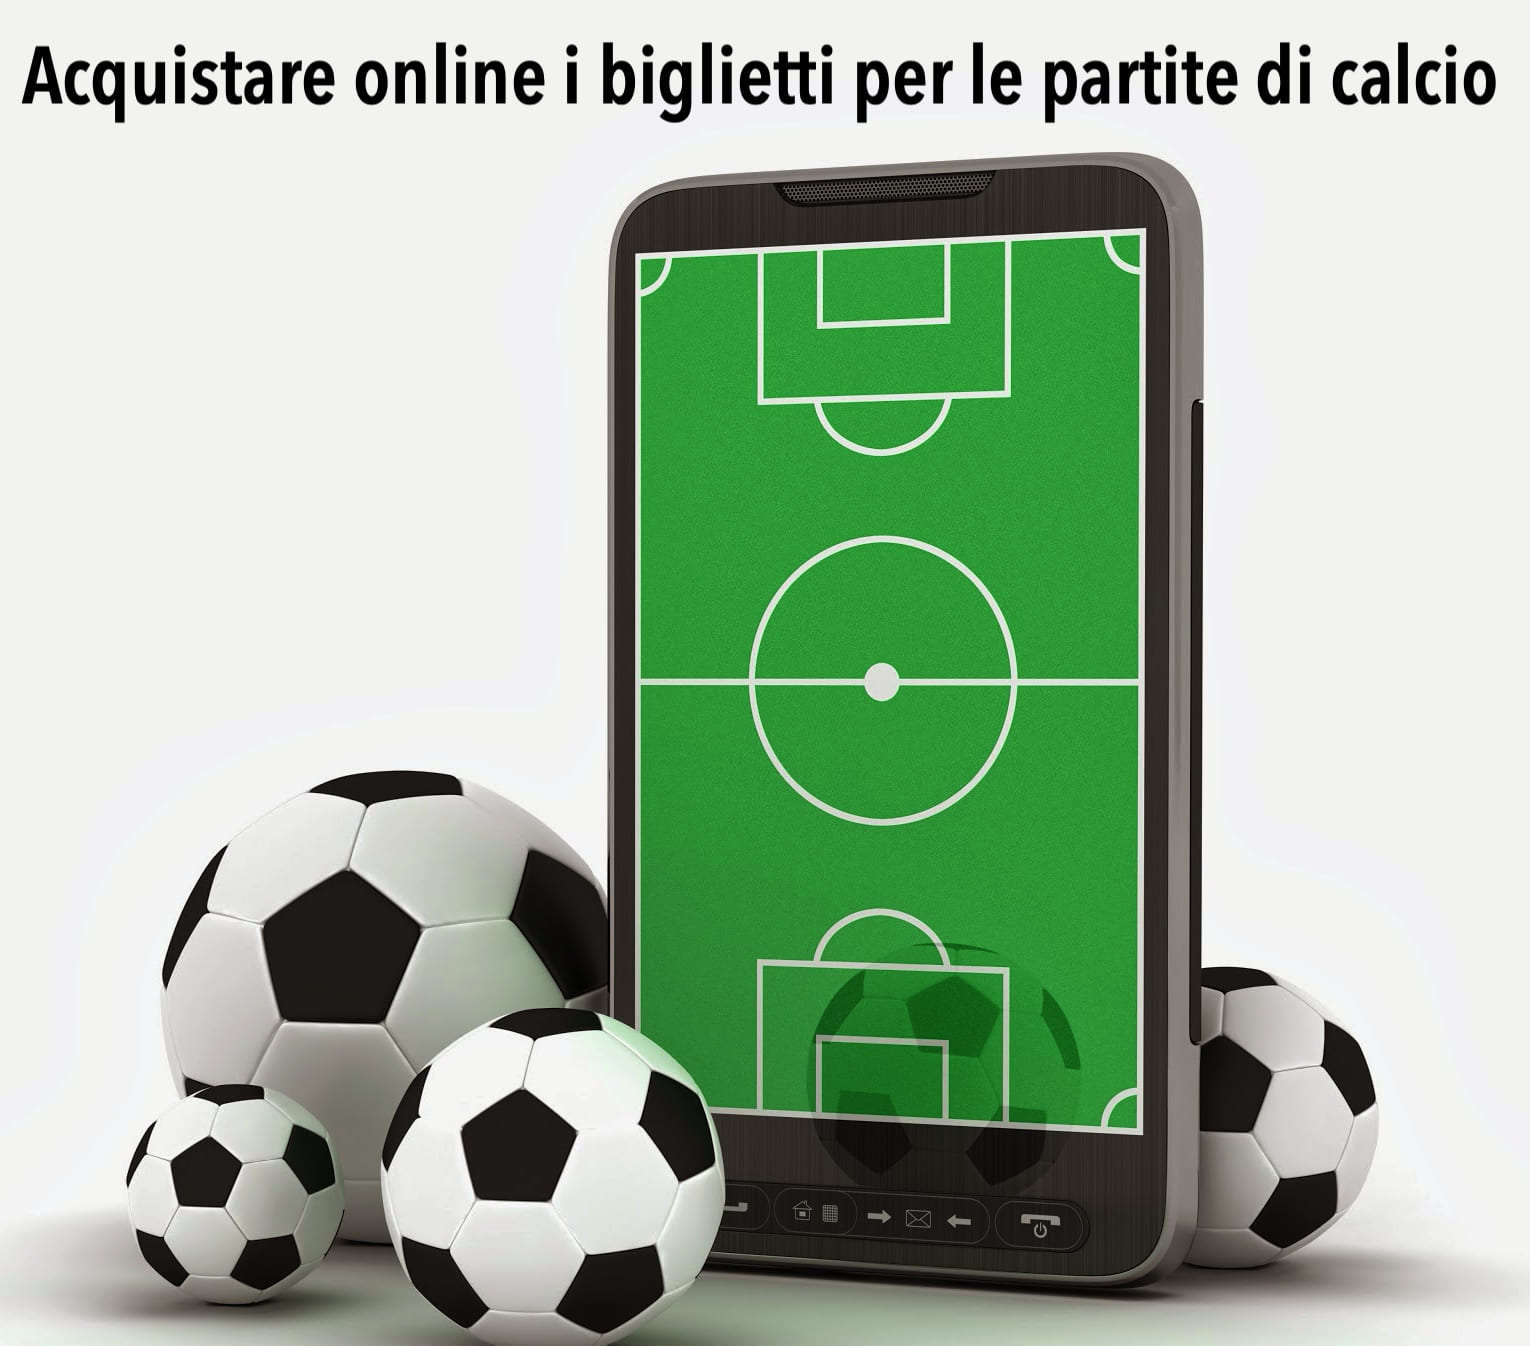 Come Dove Comprare Tickets Partite Calcio su Internet